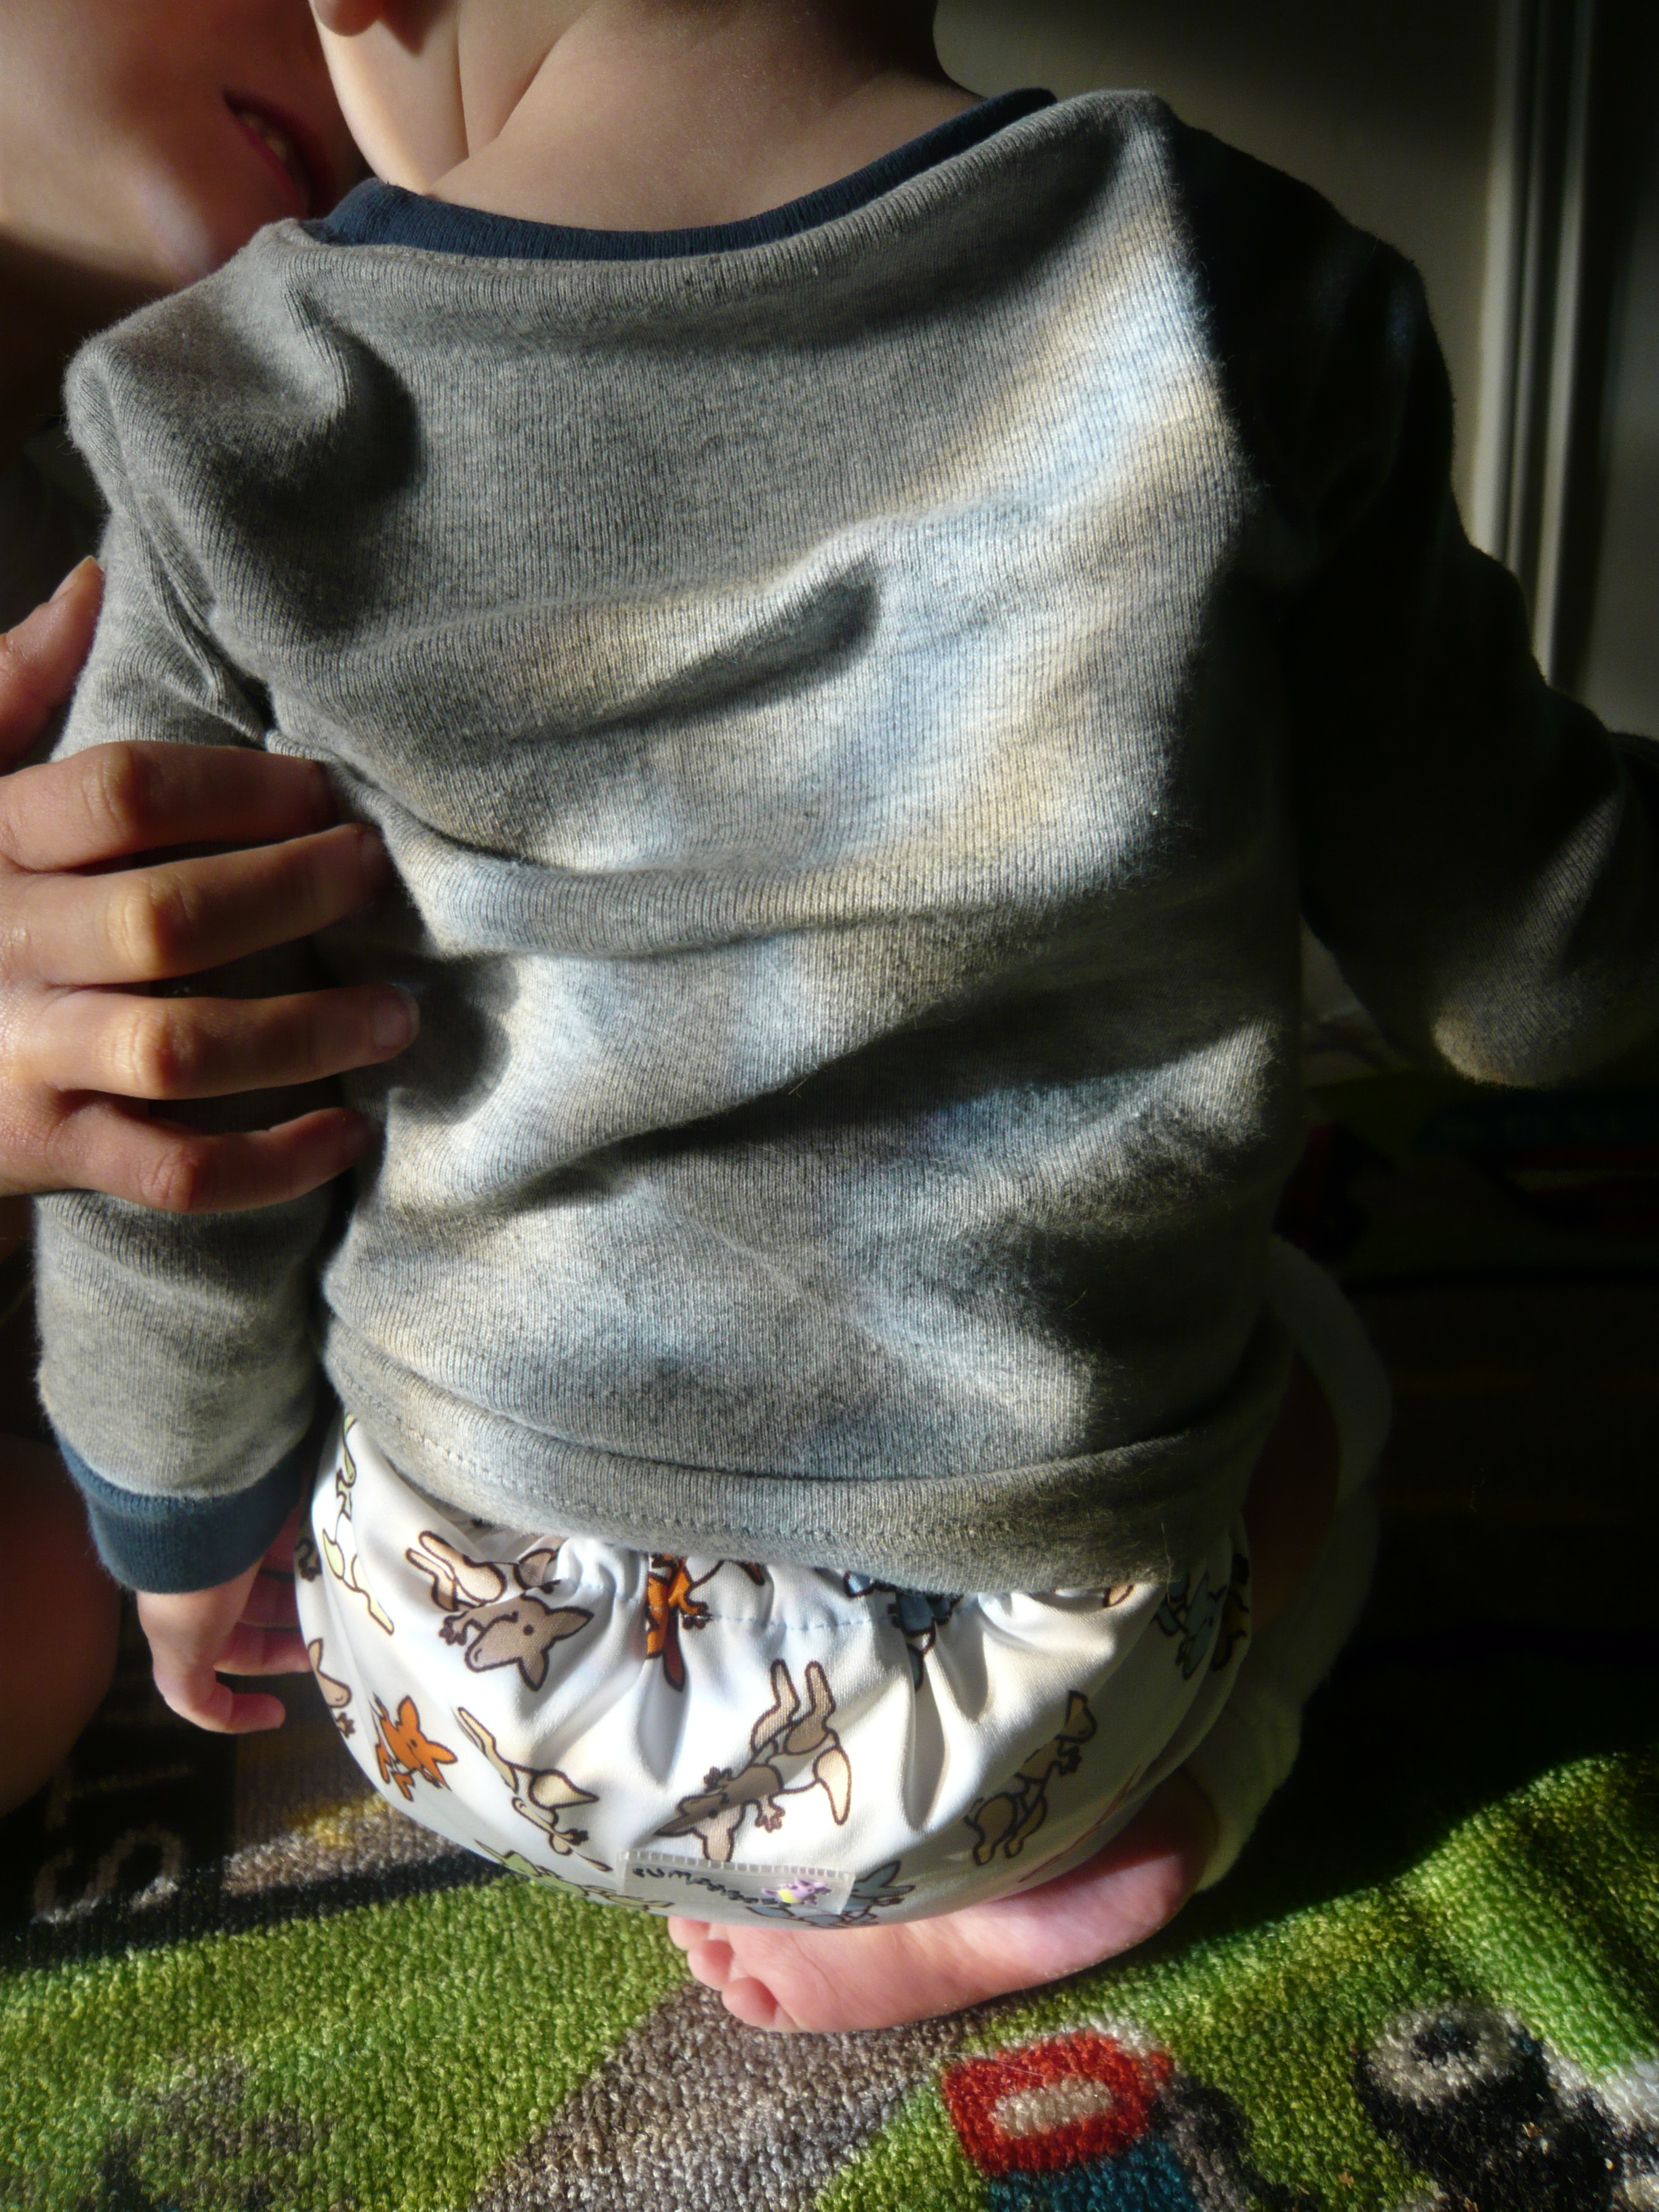 The Best Cloth Diapers For The Skinny Child